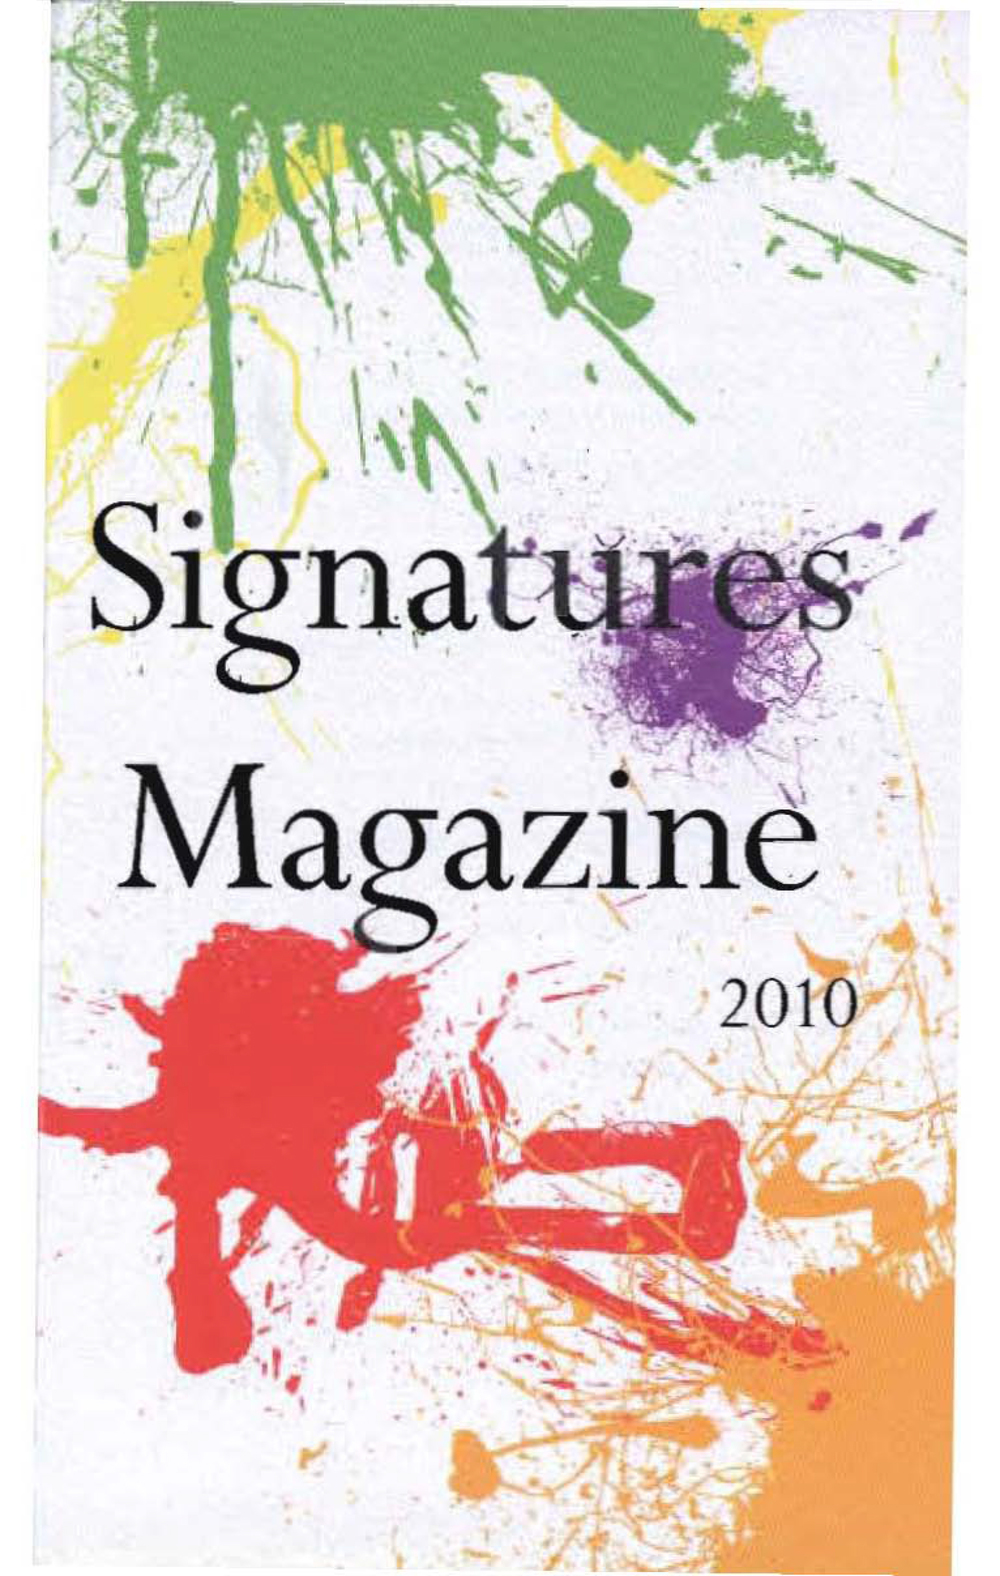 SignaturesBook2010-62.jpg